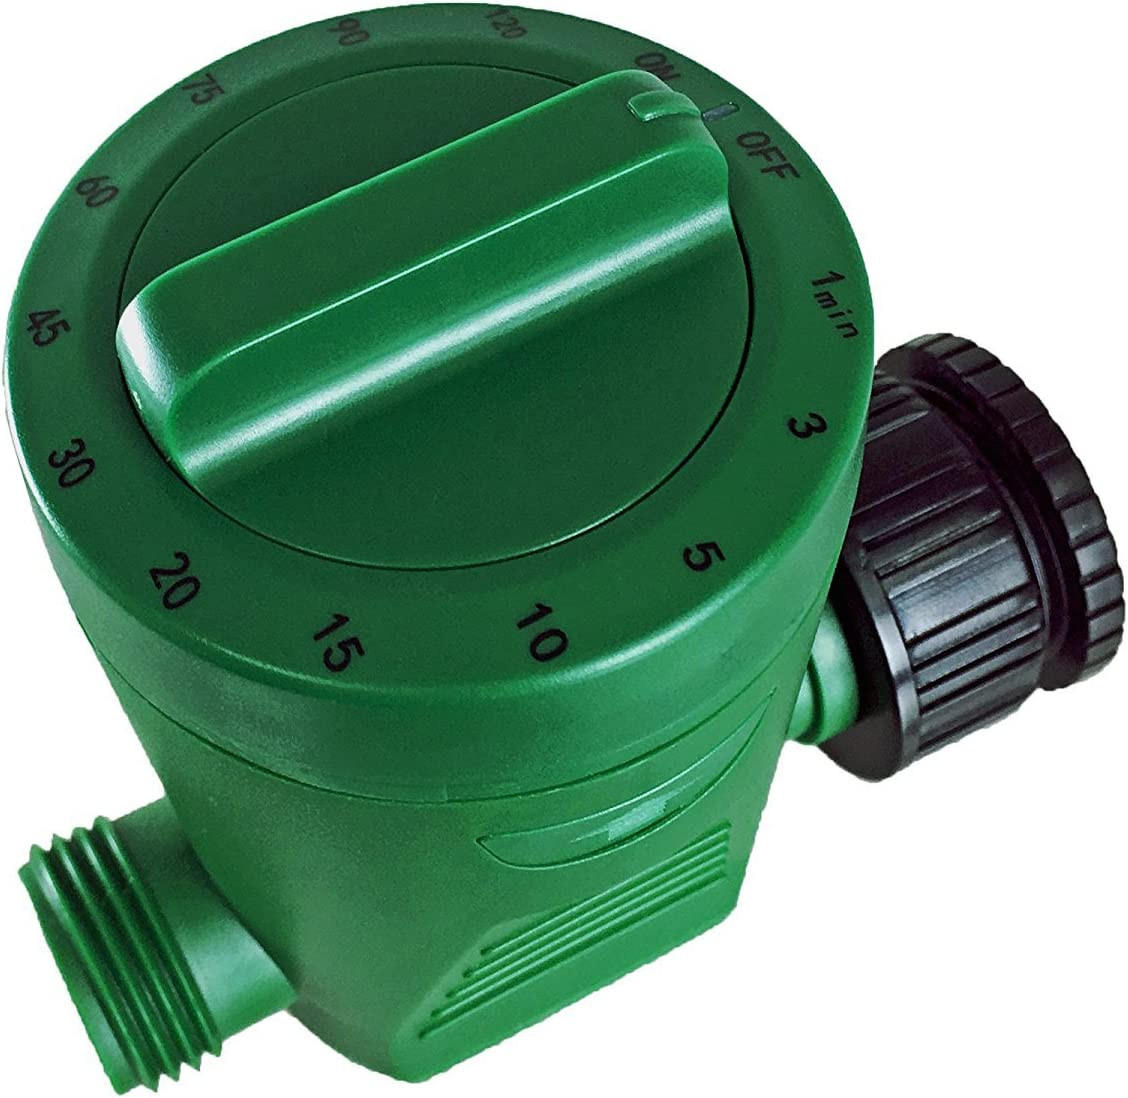 Instapark High Precision Electronic Outdoor Garden Hose End Automatic Shut Off Water Timer